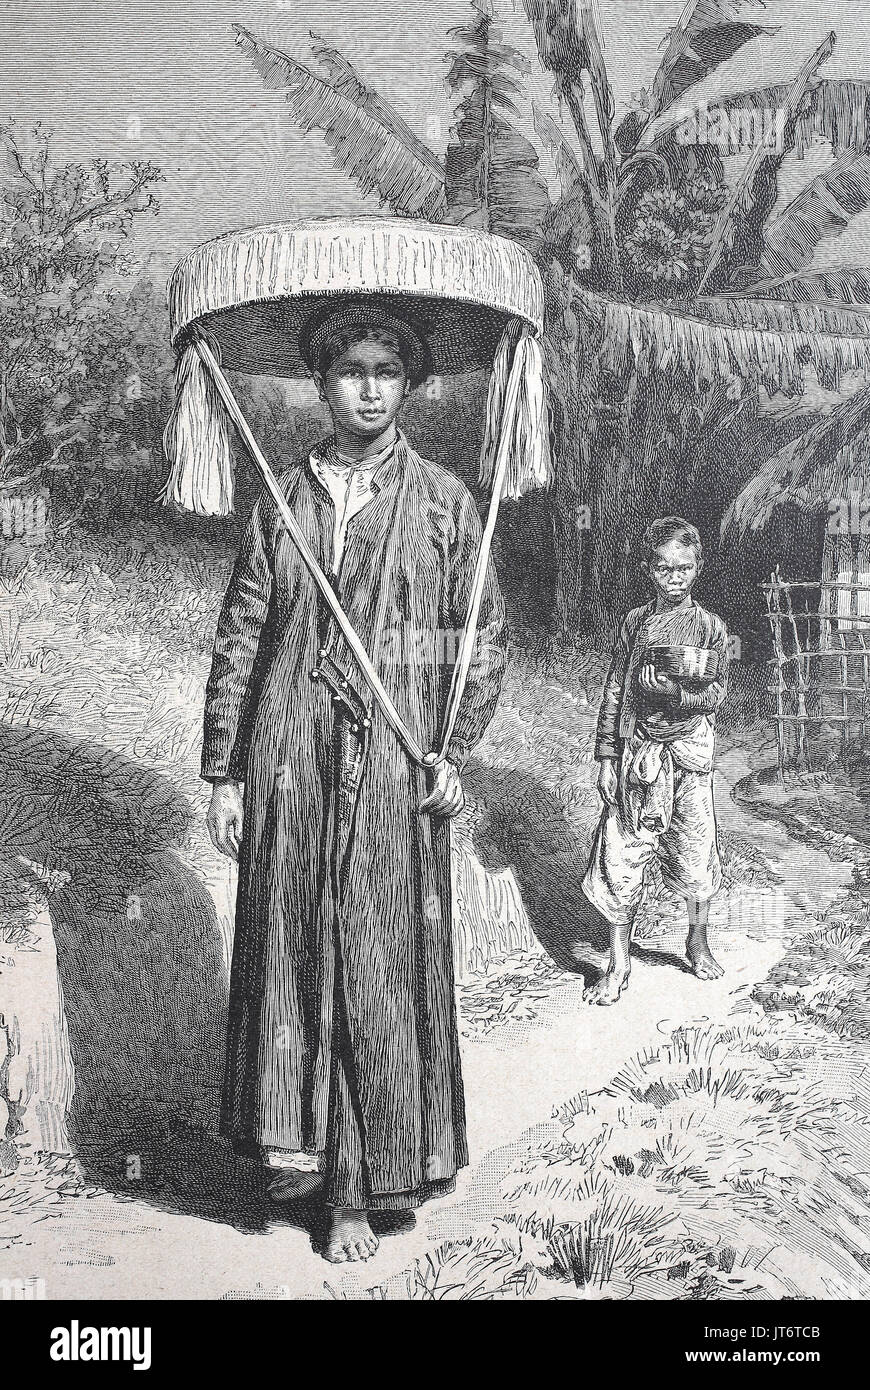 Wealthy woman from thailand, tonkinesin, in street costume and sun protection, Digital improved reproduction of an image published between 1880 - 1885 - Stock Image